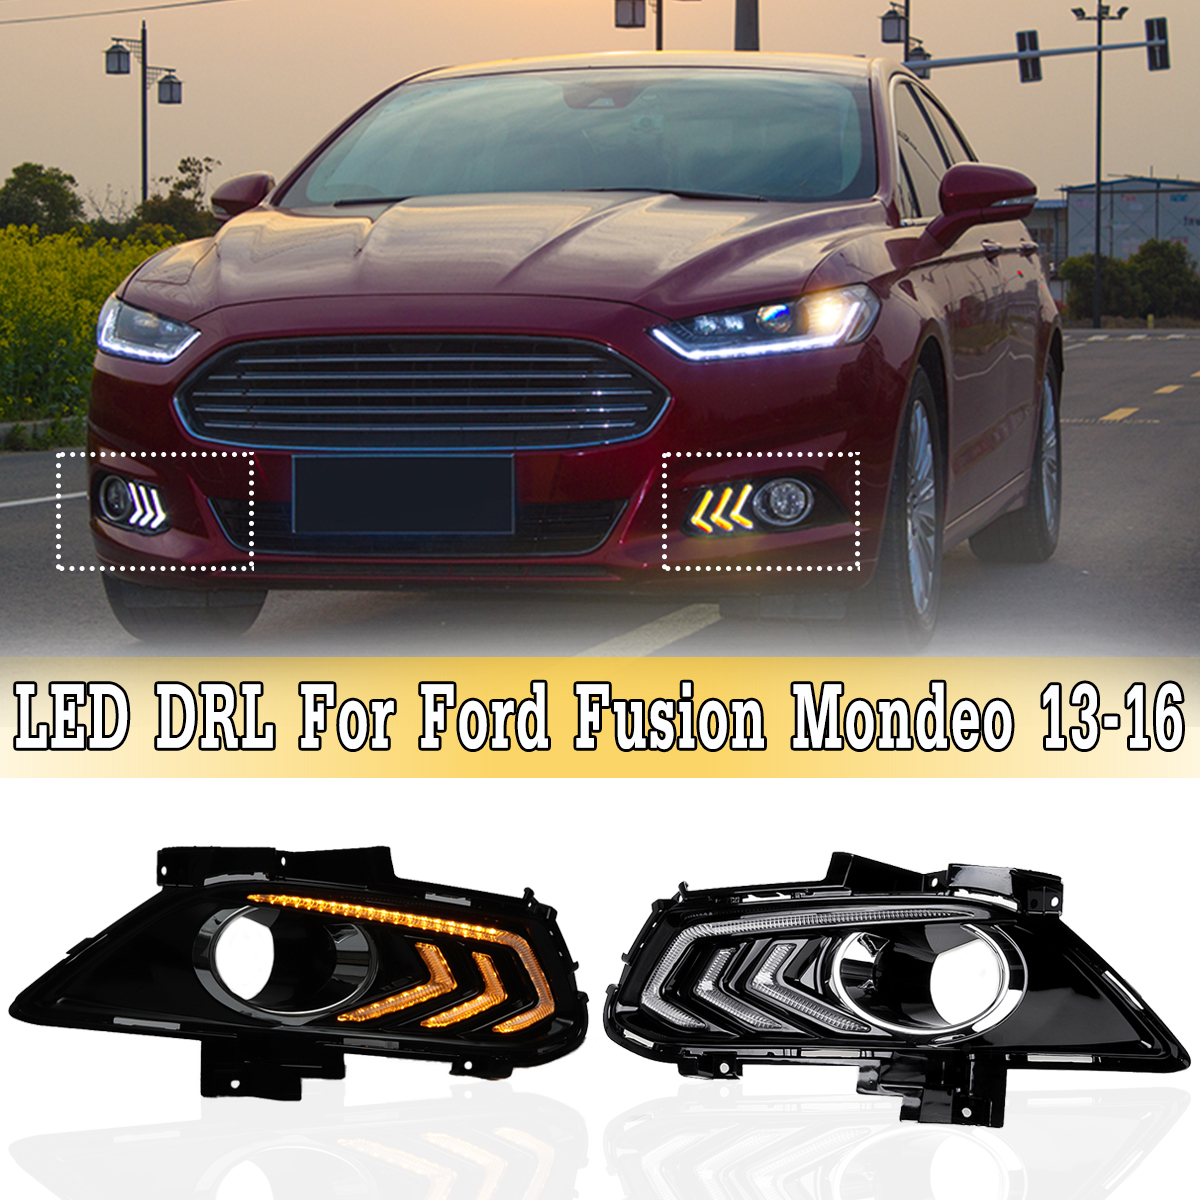 White and Amber LED DRL Daytime Running Light with Turn Signal Fog Lights Lamp For Ford For Fusion For Mondeo 2013-2016 tcart drl headlights with turn signal lights for ford mondeo 2013 2016 daytime running light auto led day driving fog lamp page 5